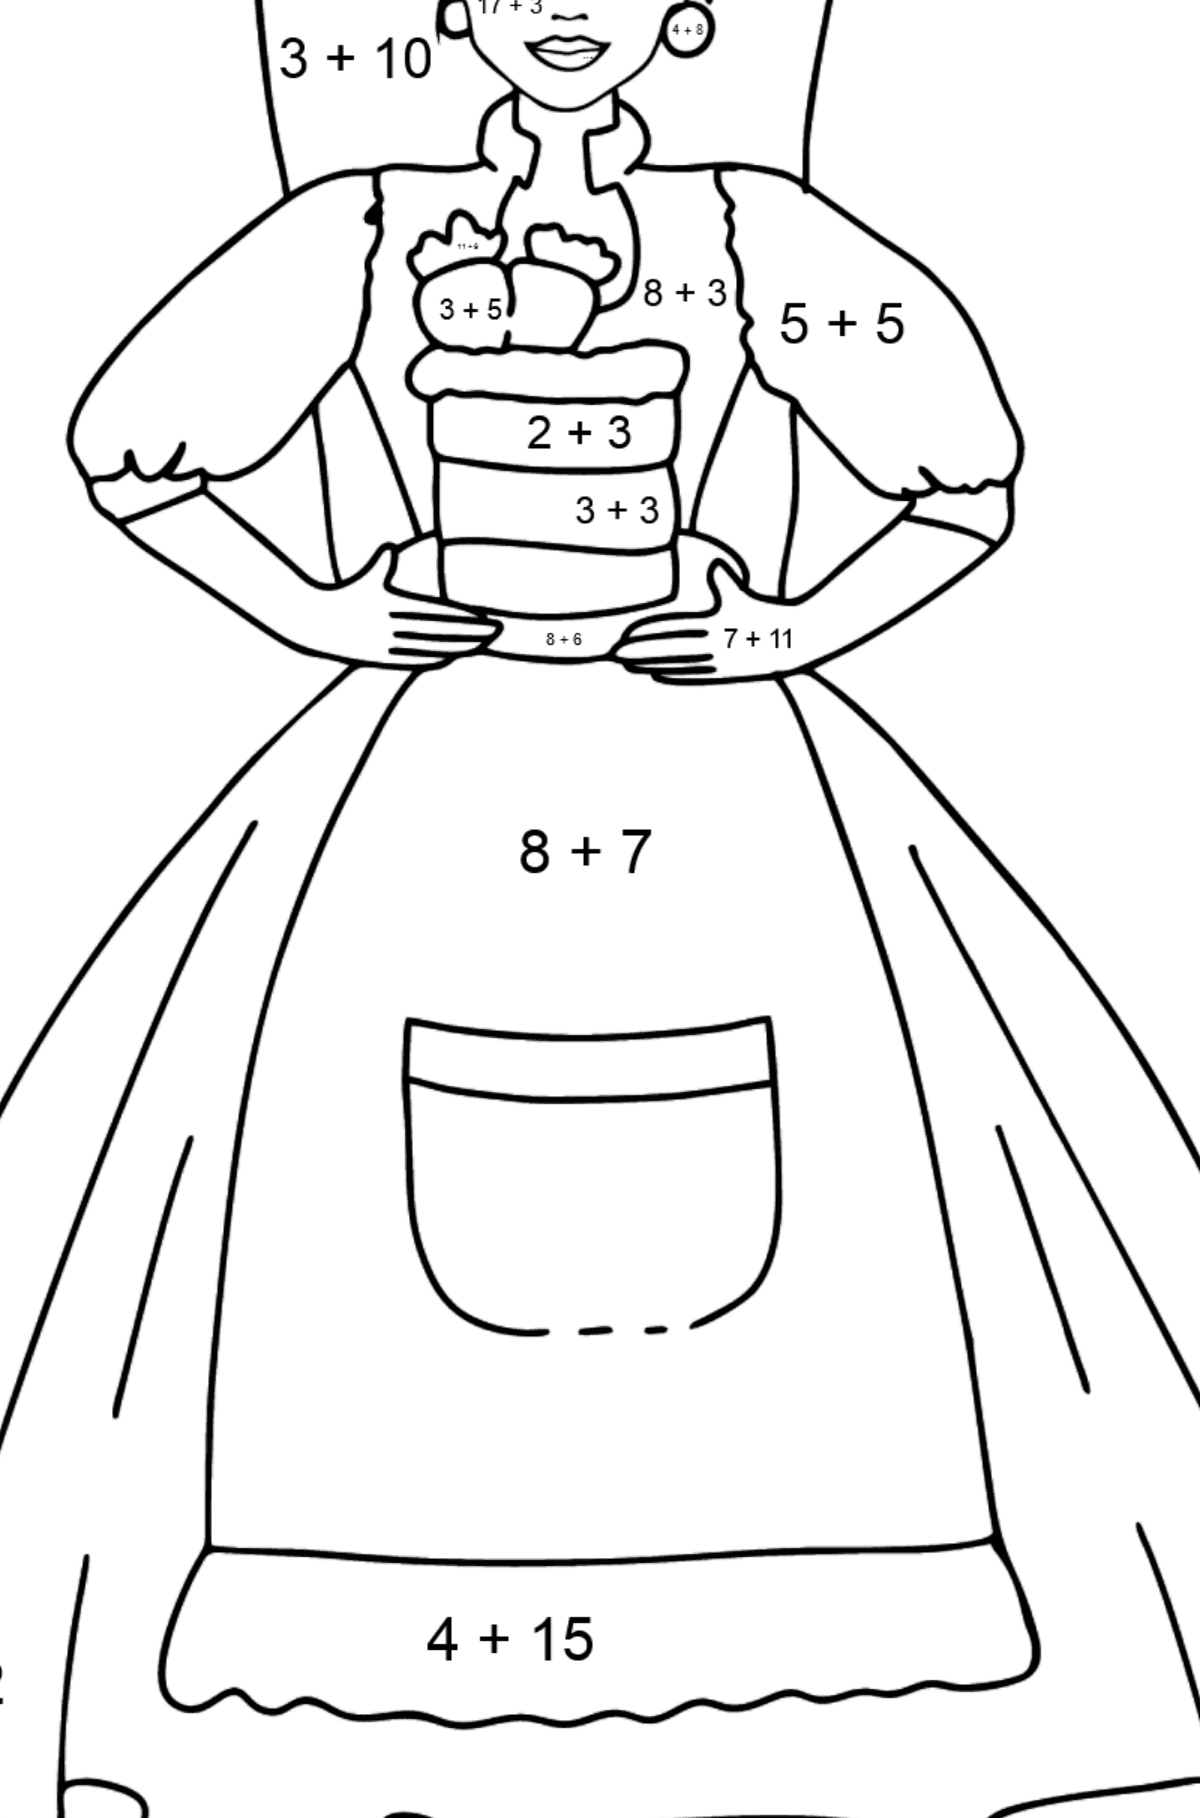 Barbie Doll and Cake coloring page - Math Coloring - Addition for Kids